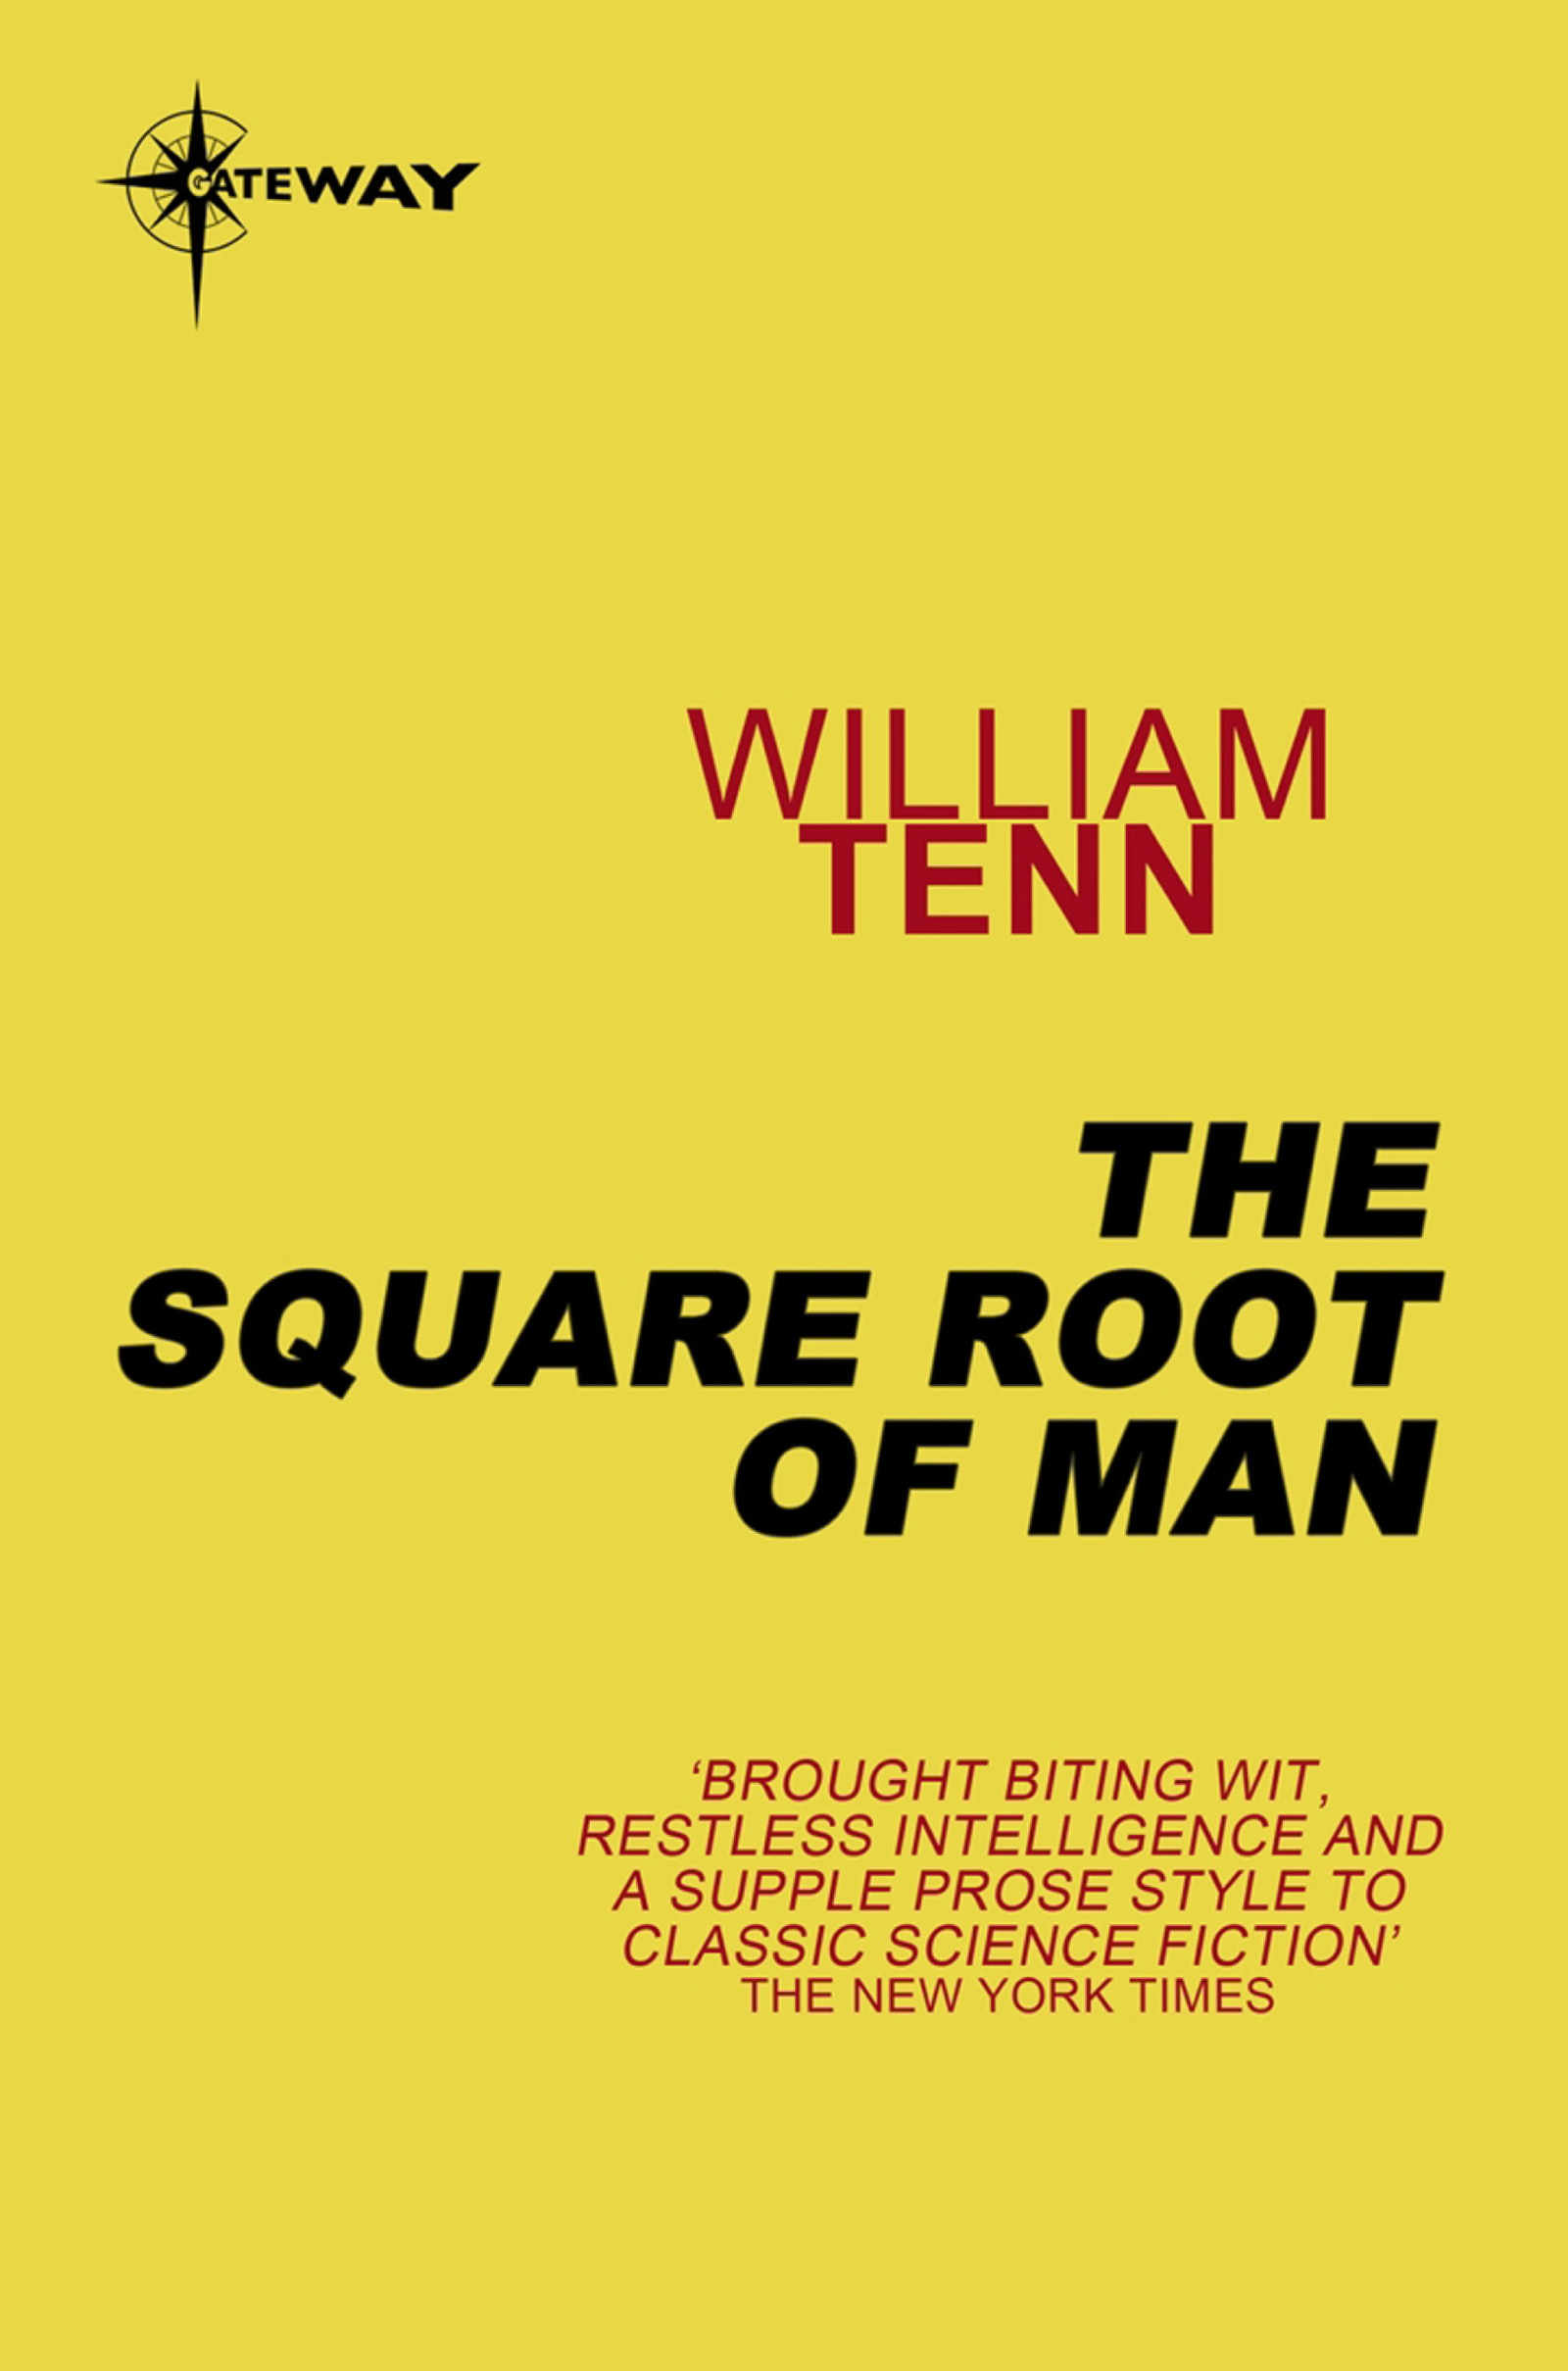 The Square Root of Man